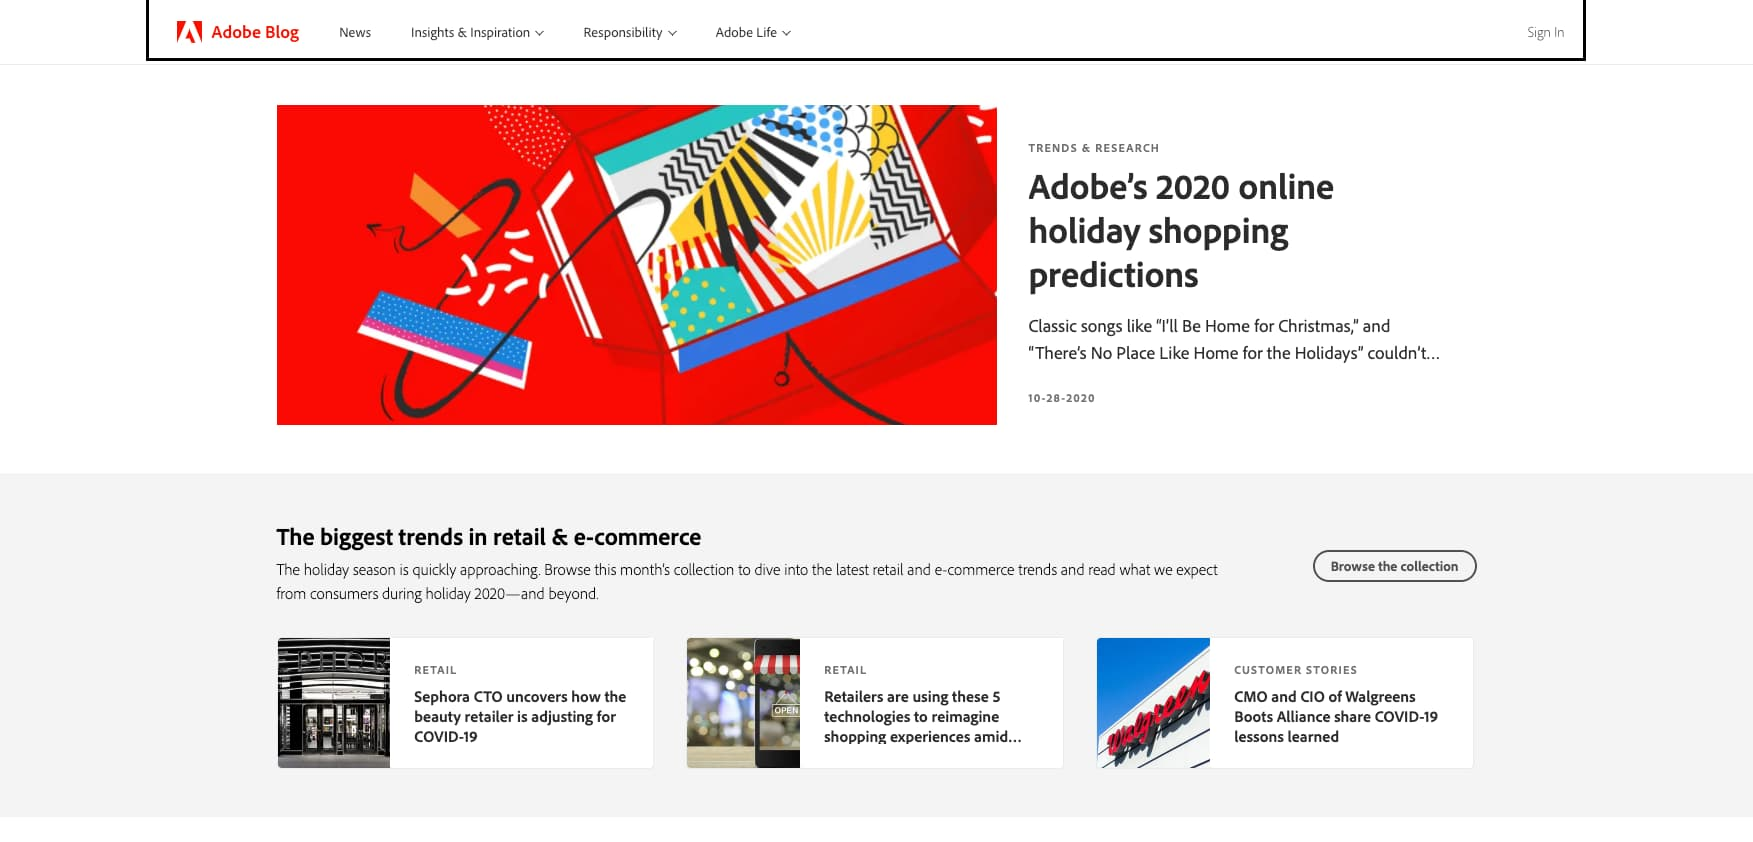 For an example of great blog layout design, check out Adobe's blog. It features a header story and the first row of the grid is above the fold.